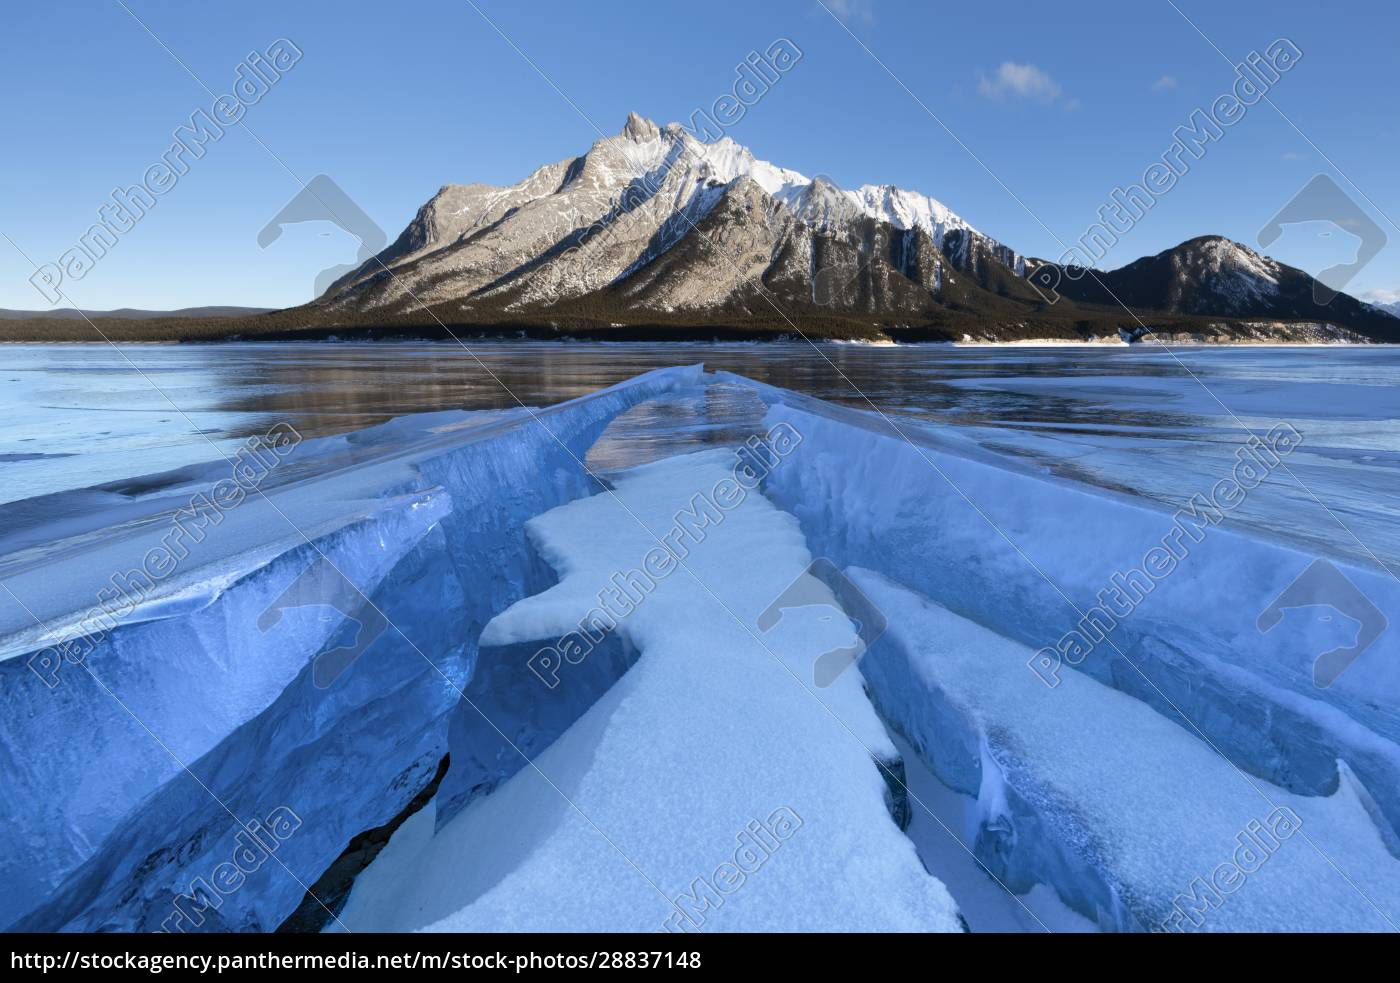 ice, formations, with, mount, michener, in - 28837148